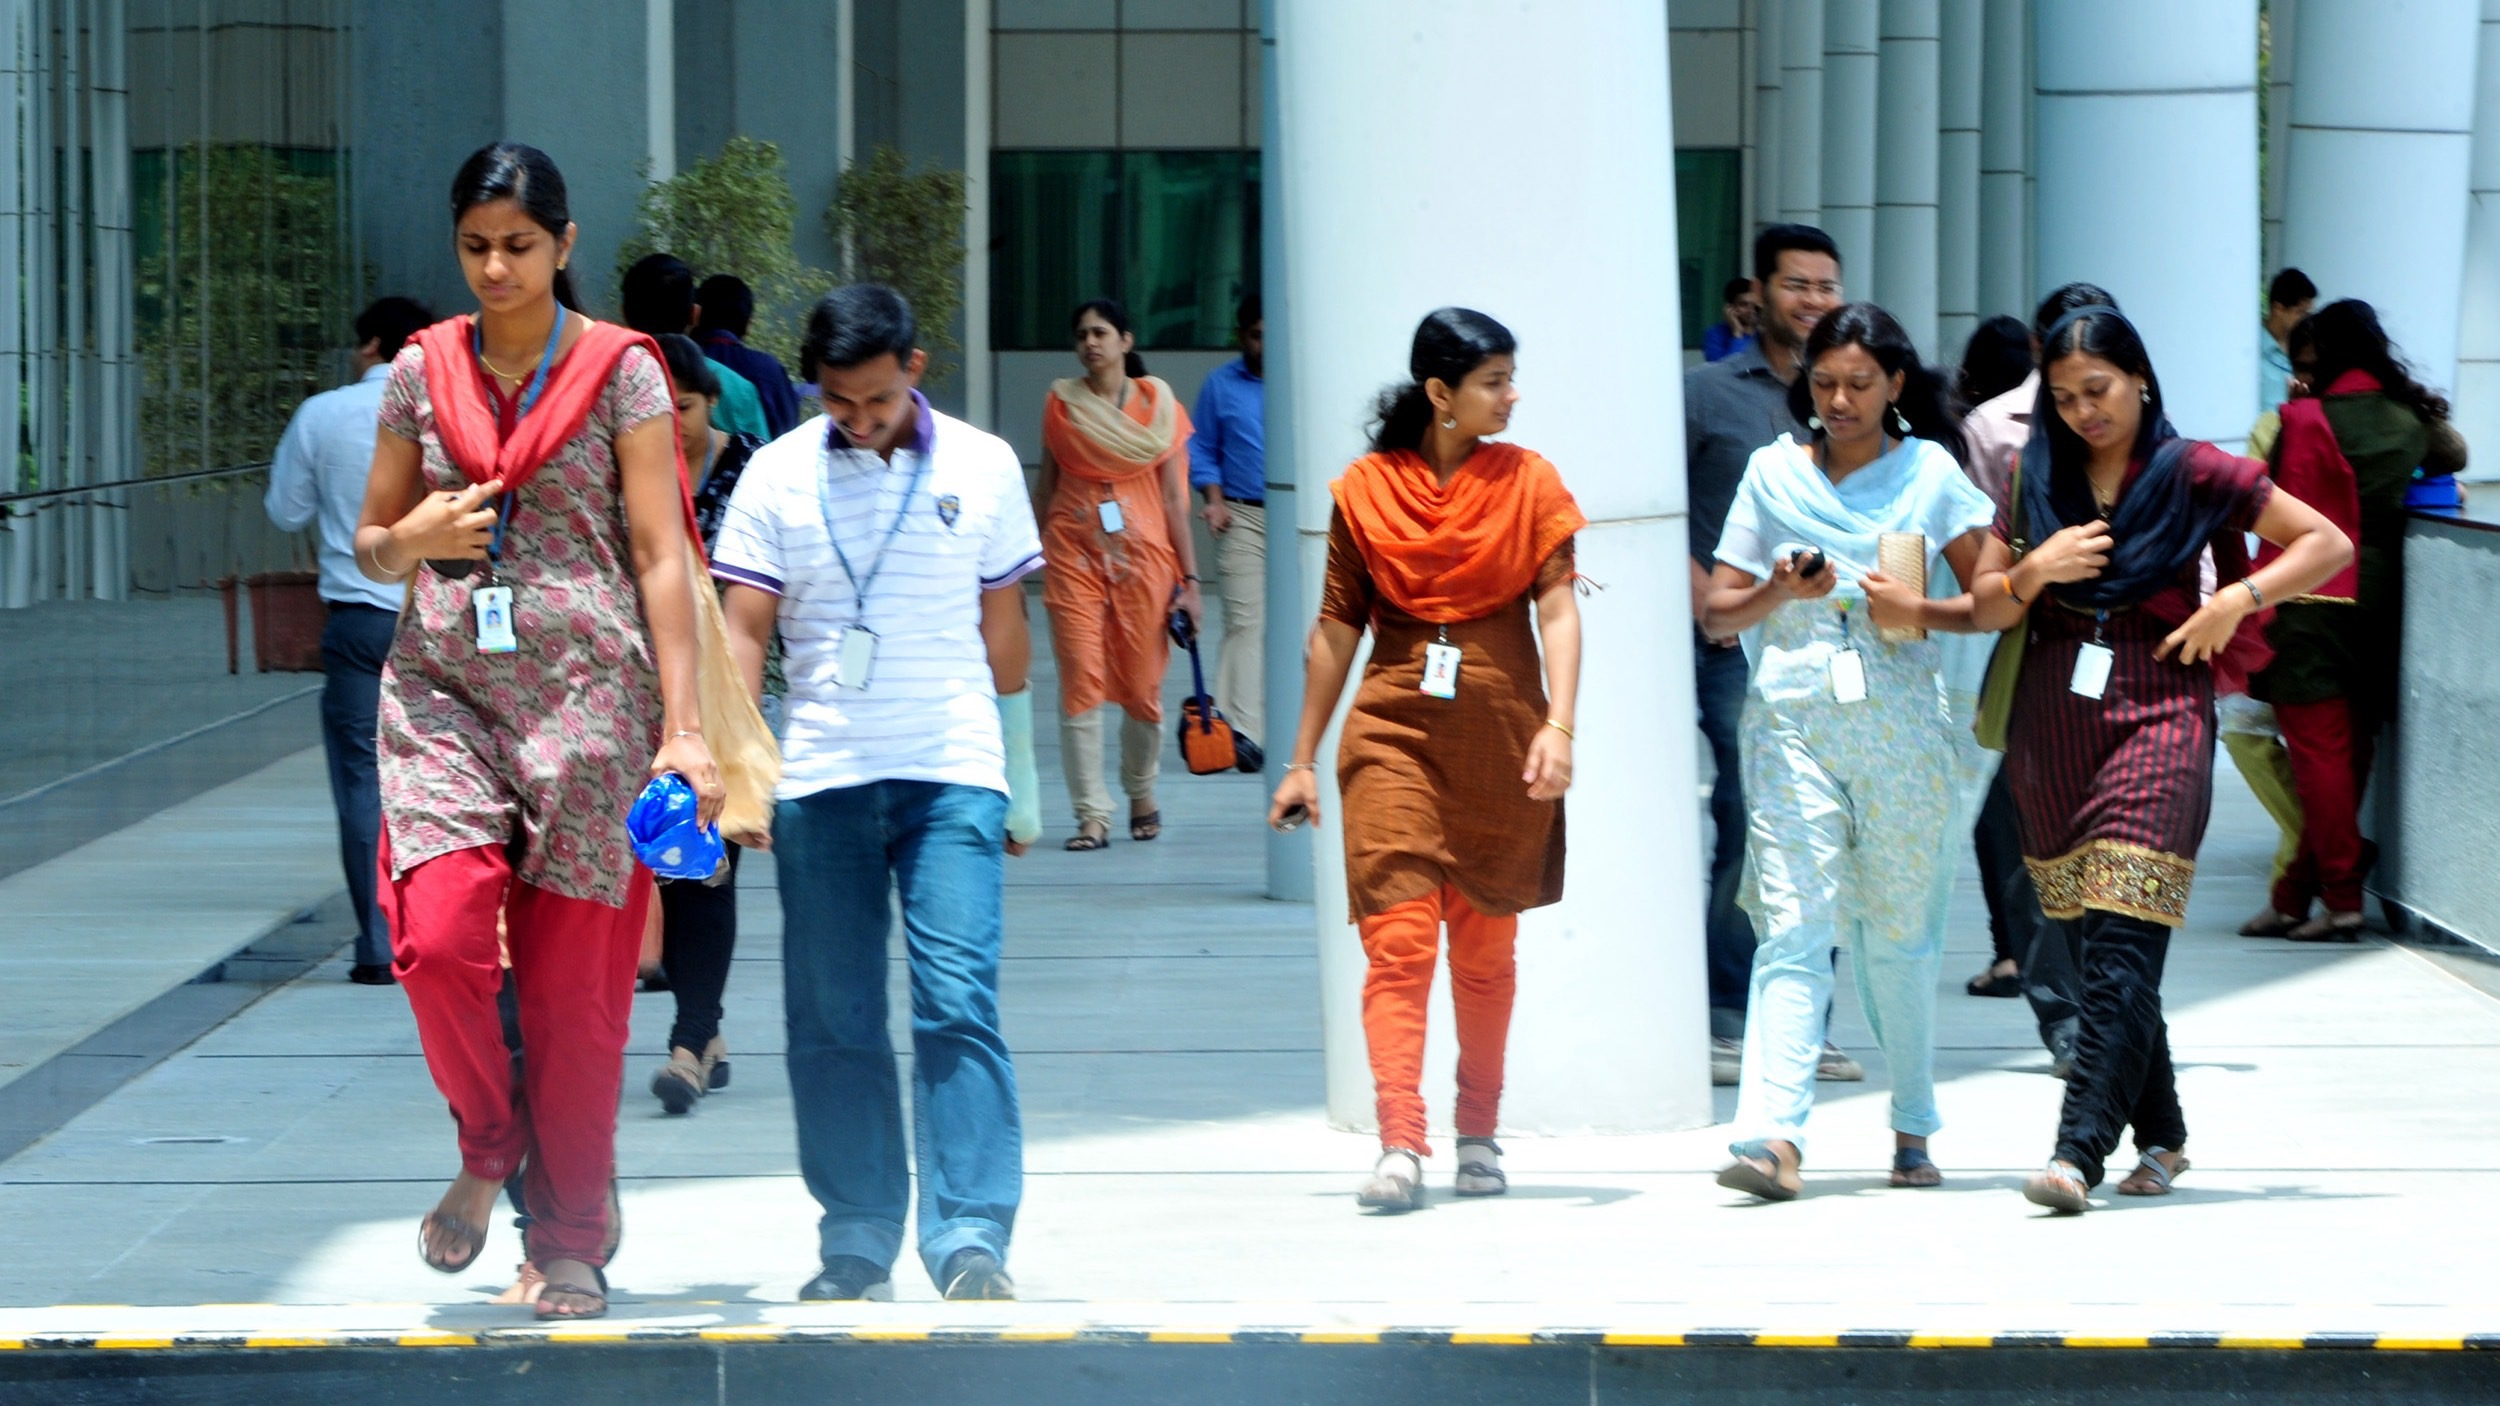 epa03316011 Indian software employees of Wipro seen at Wipro campus in southern Indian city of Bangalore, 24 July 2012. Wipro Ltd, India's No. 3 software services exporter, reported an 18 per cent rise in quarterly net profit, meeting expectations, as customers outsourced more work to the company to cut their operational expenses.  EPA/JAGADEESH NV